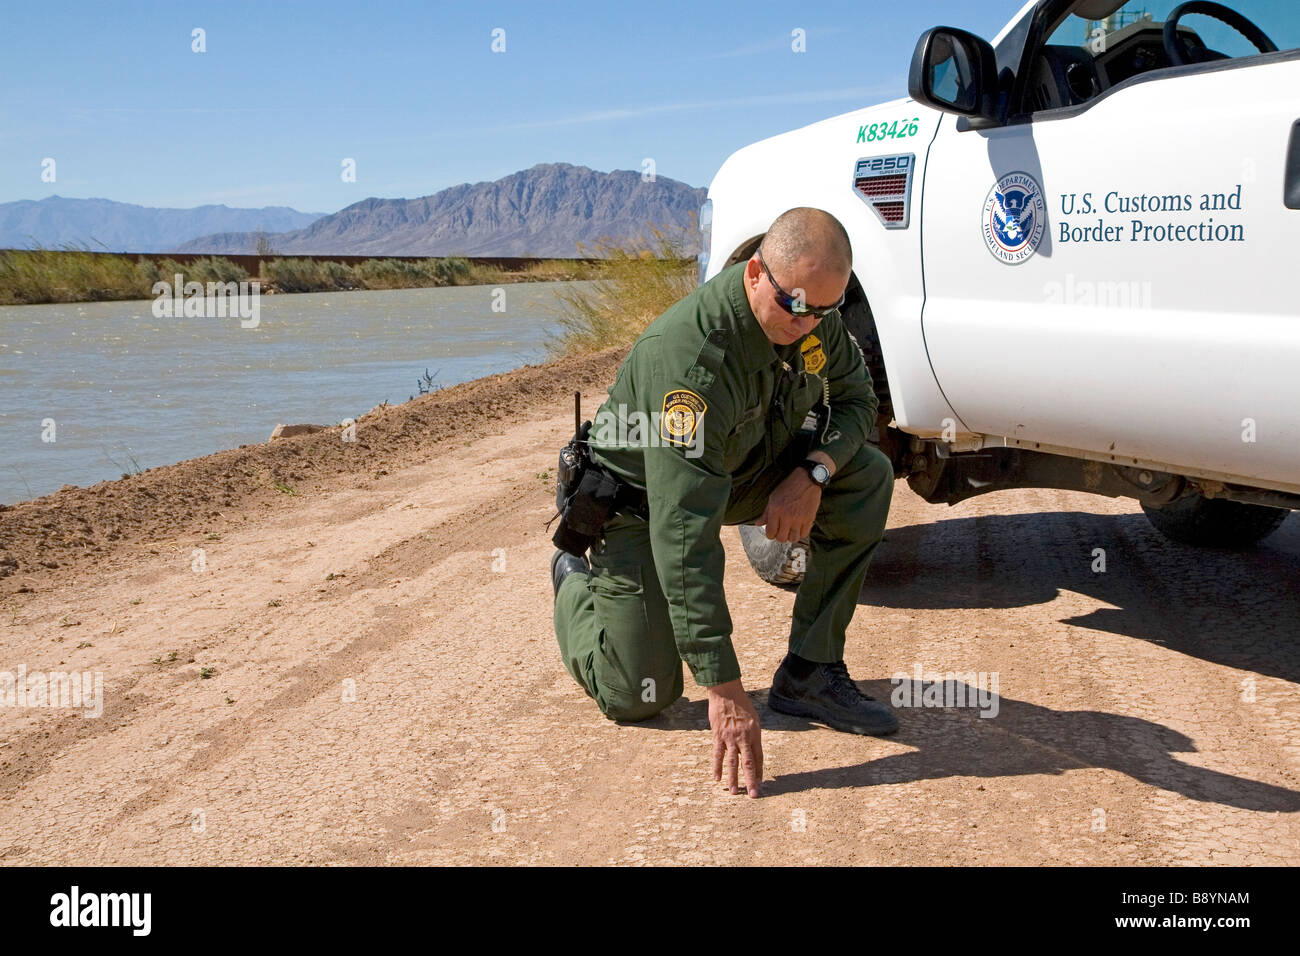 U S Border Patrol agent checking for footprints at the U S Mexico border along the All American Canal near Calexico - Stock Image